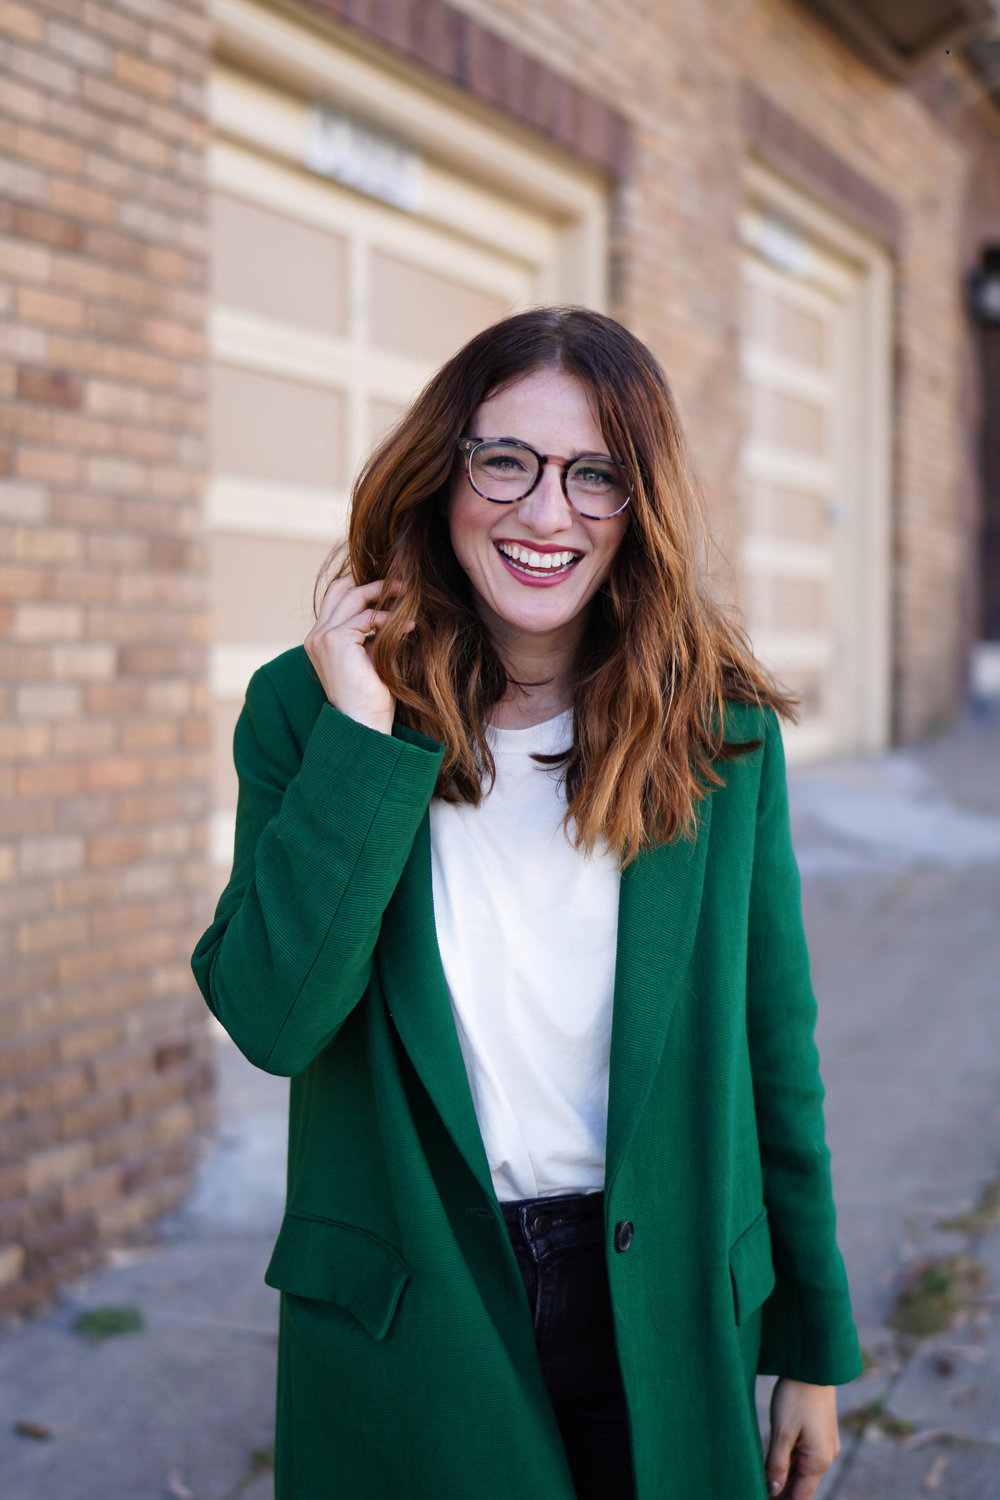 You know those Crossroads finds where when you actually see it – you can't really believe it? Well, that's what happened with this bad boy. Originally from Zara, I've been looking for a lightweight green jacket for quite some time. And you know the green I'm talking about. Not neon, but emerald. It's perfect for layering or wearing as a statement piece and I thank my lucky stars for finding it.